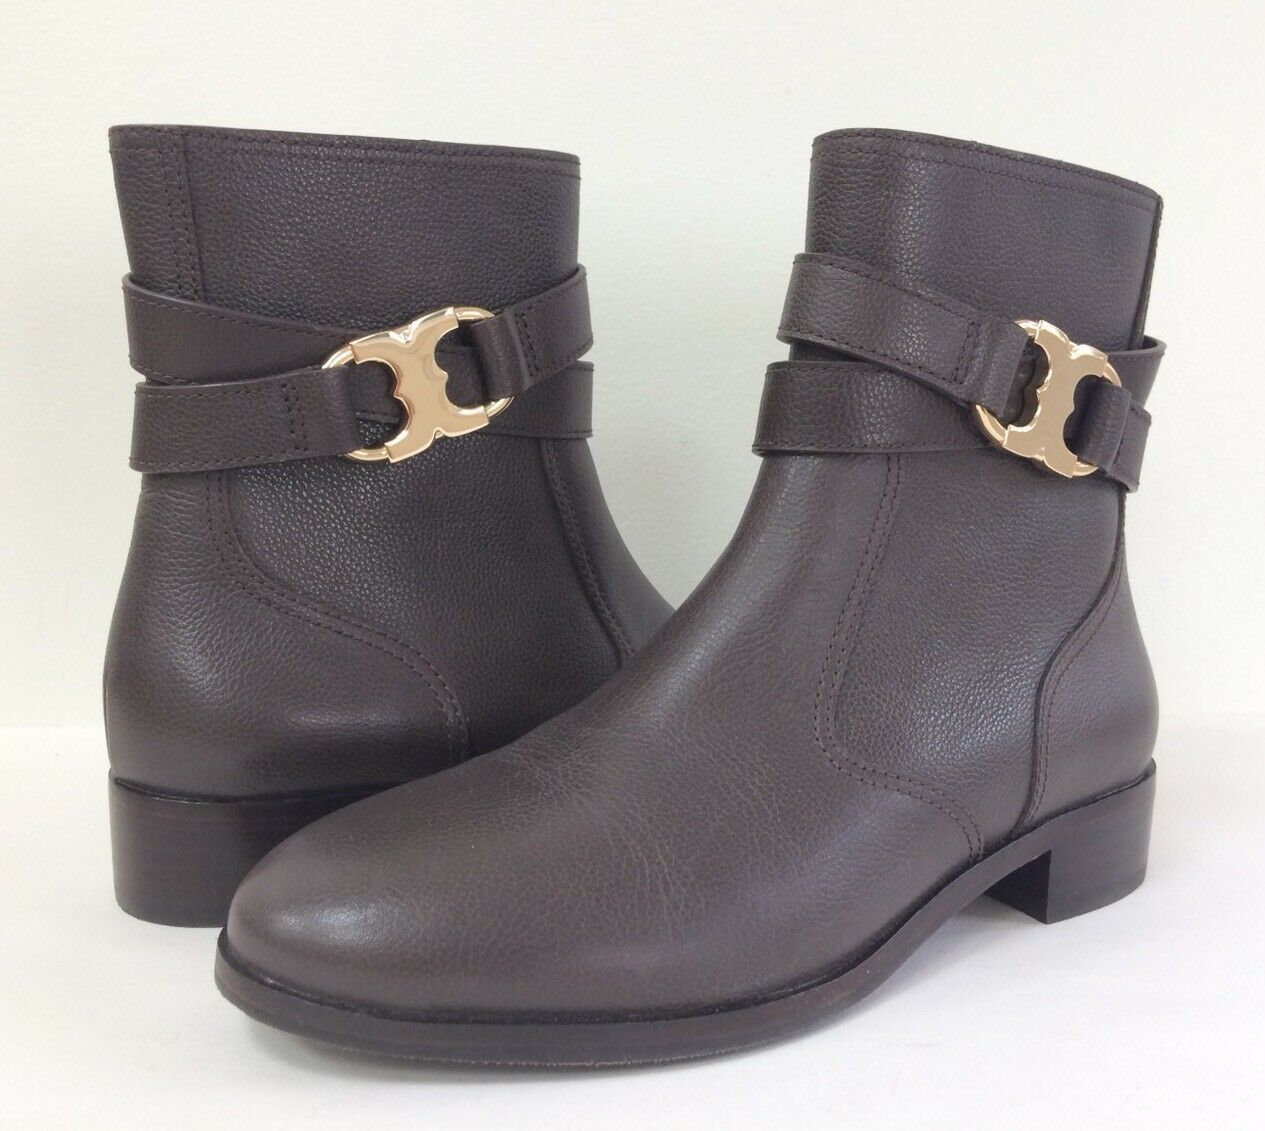 New Tory Burch Women's 7 8.5 Gemini Link Leather Ankle Boot Bootie Coconut Brown